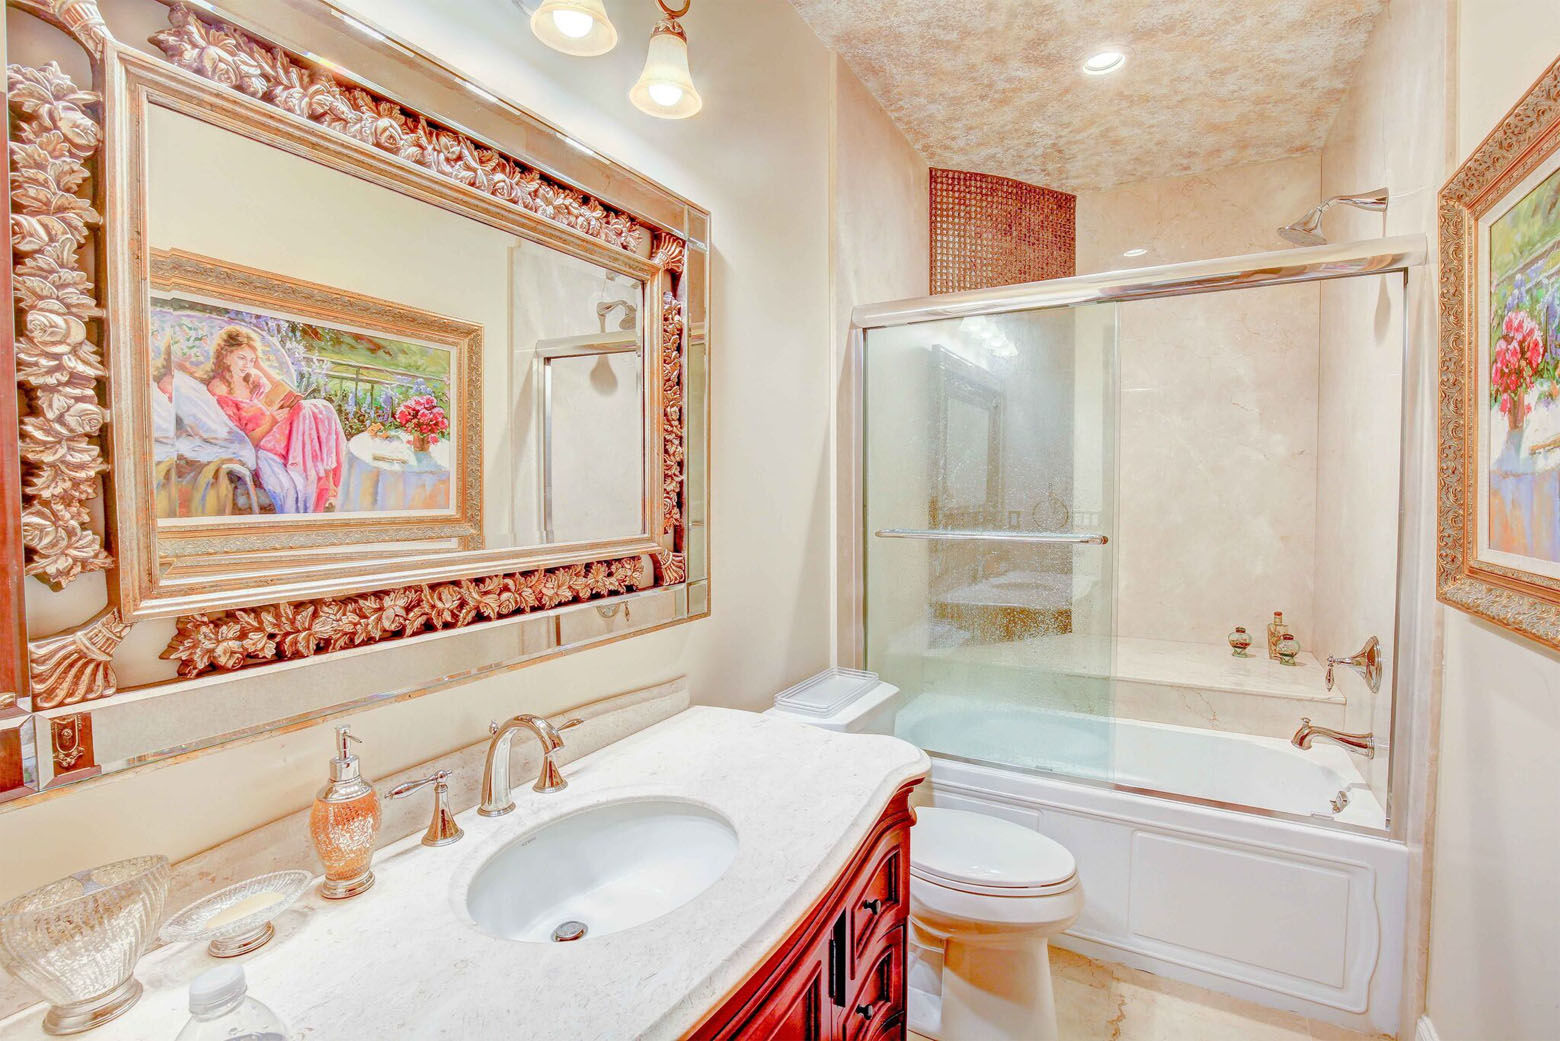 The Love Point estate features 5 full and 2 half bathrooms. (Courtesy Phil and Victoria Gerdes)